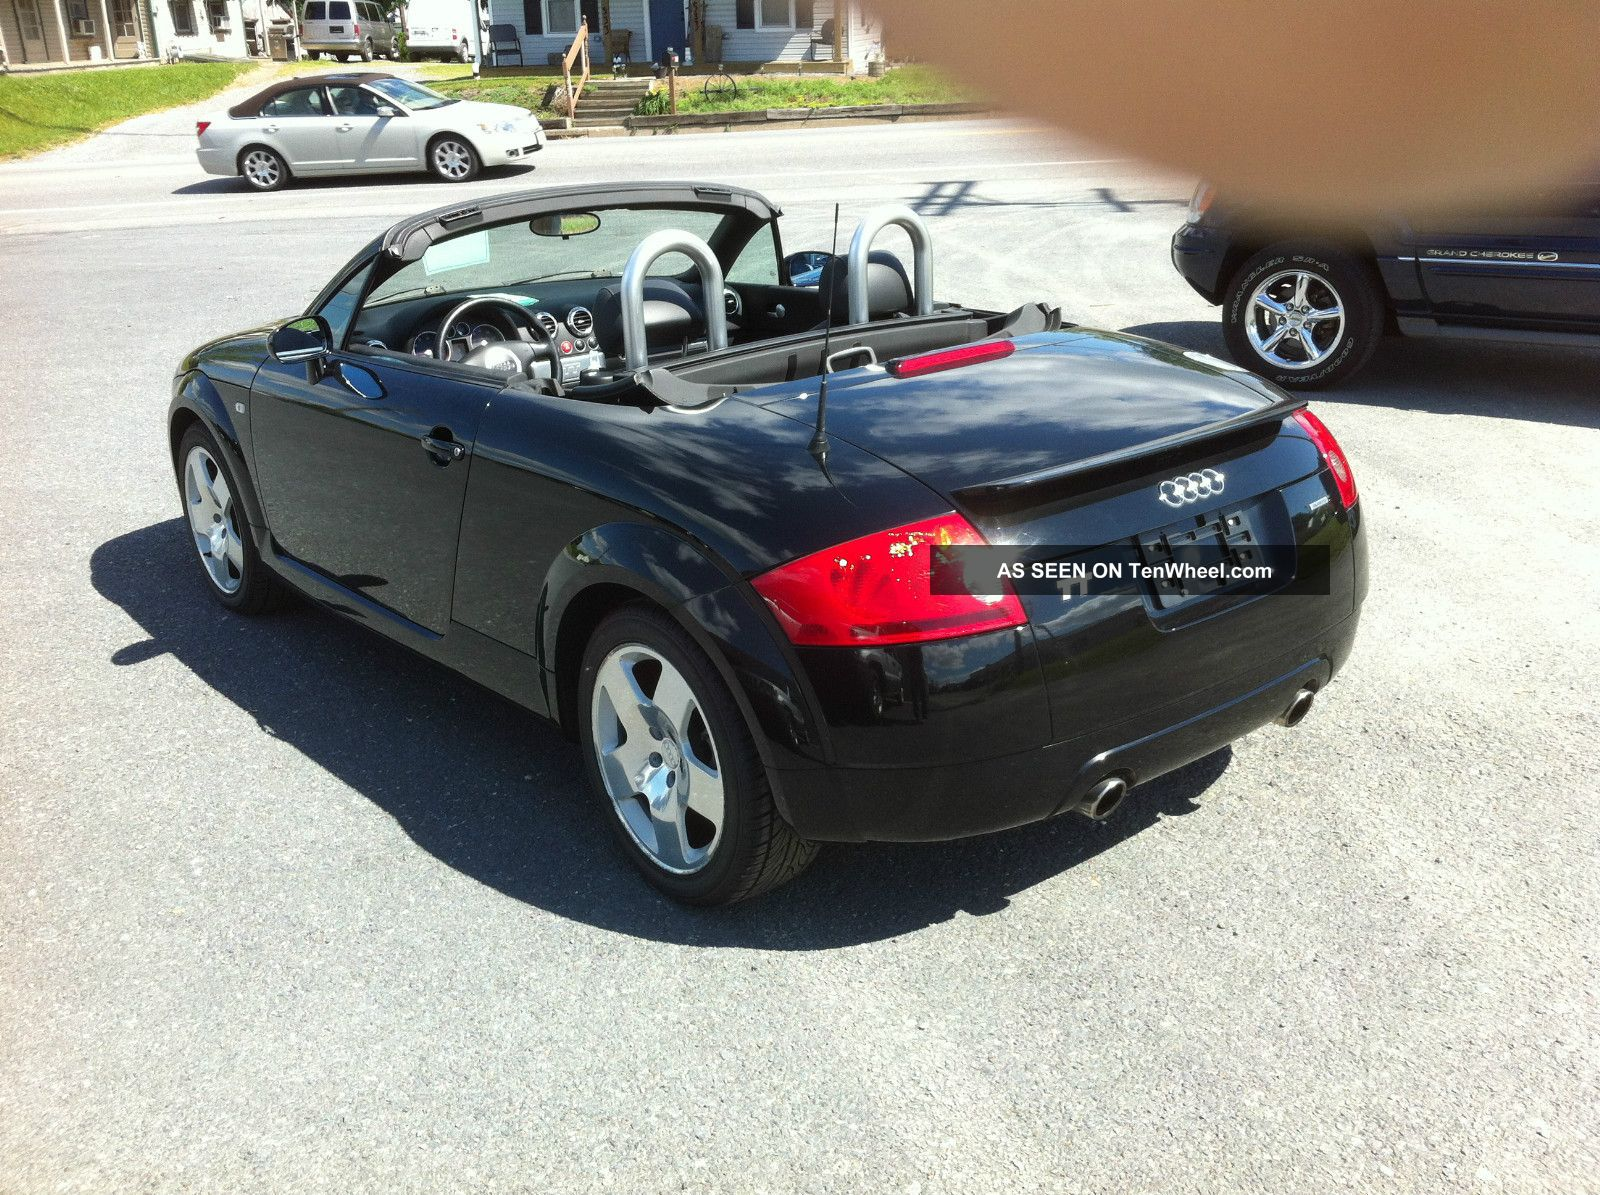 2001 audi tt quattro awd convertible 225 hp 6 speed bose sound system. Black Bedroom Furniture Sets. Home Design Ideas